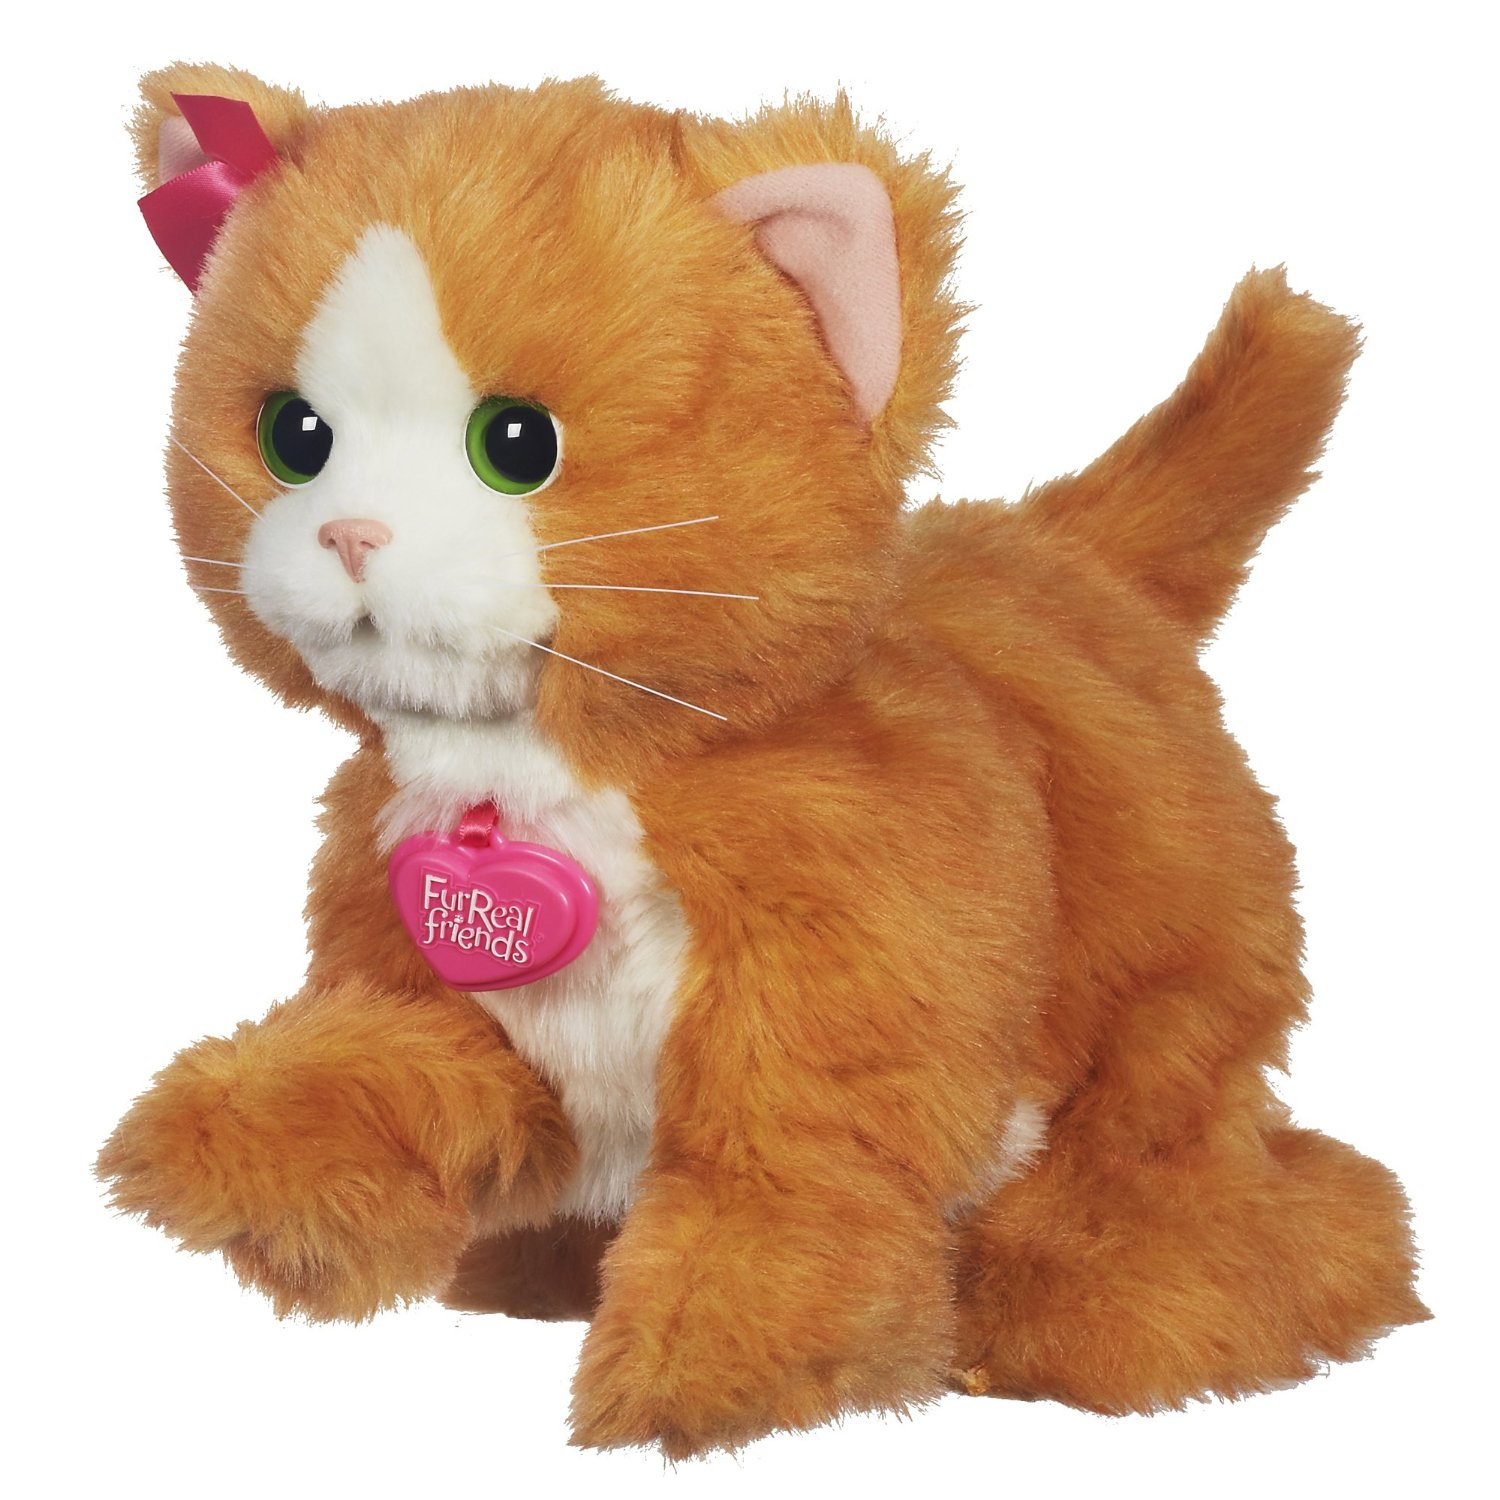 Furreal Friends Daisy Plays With Me Kitty Toy 64 99 Fur Real Friends Cat Toys Kitten Toys